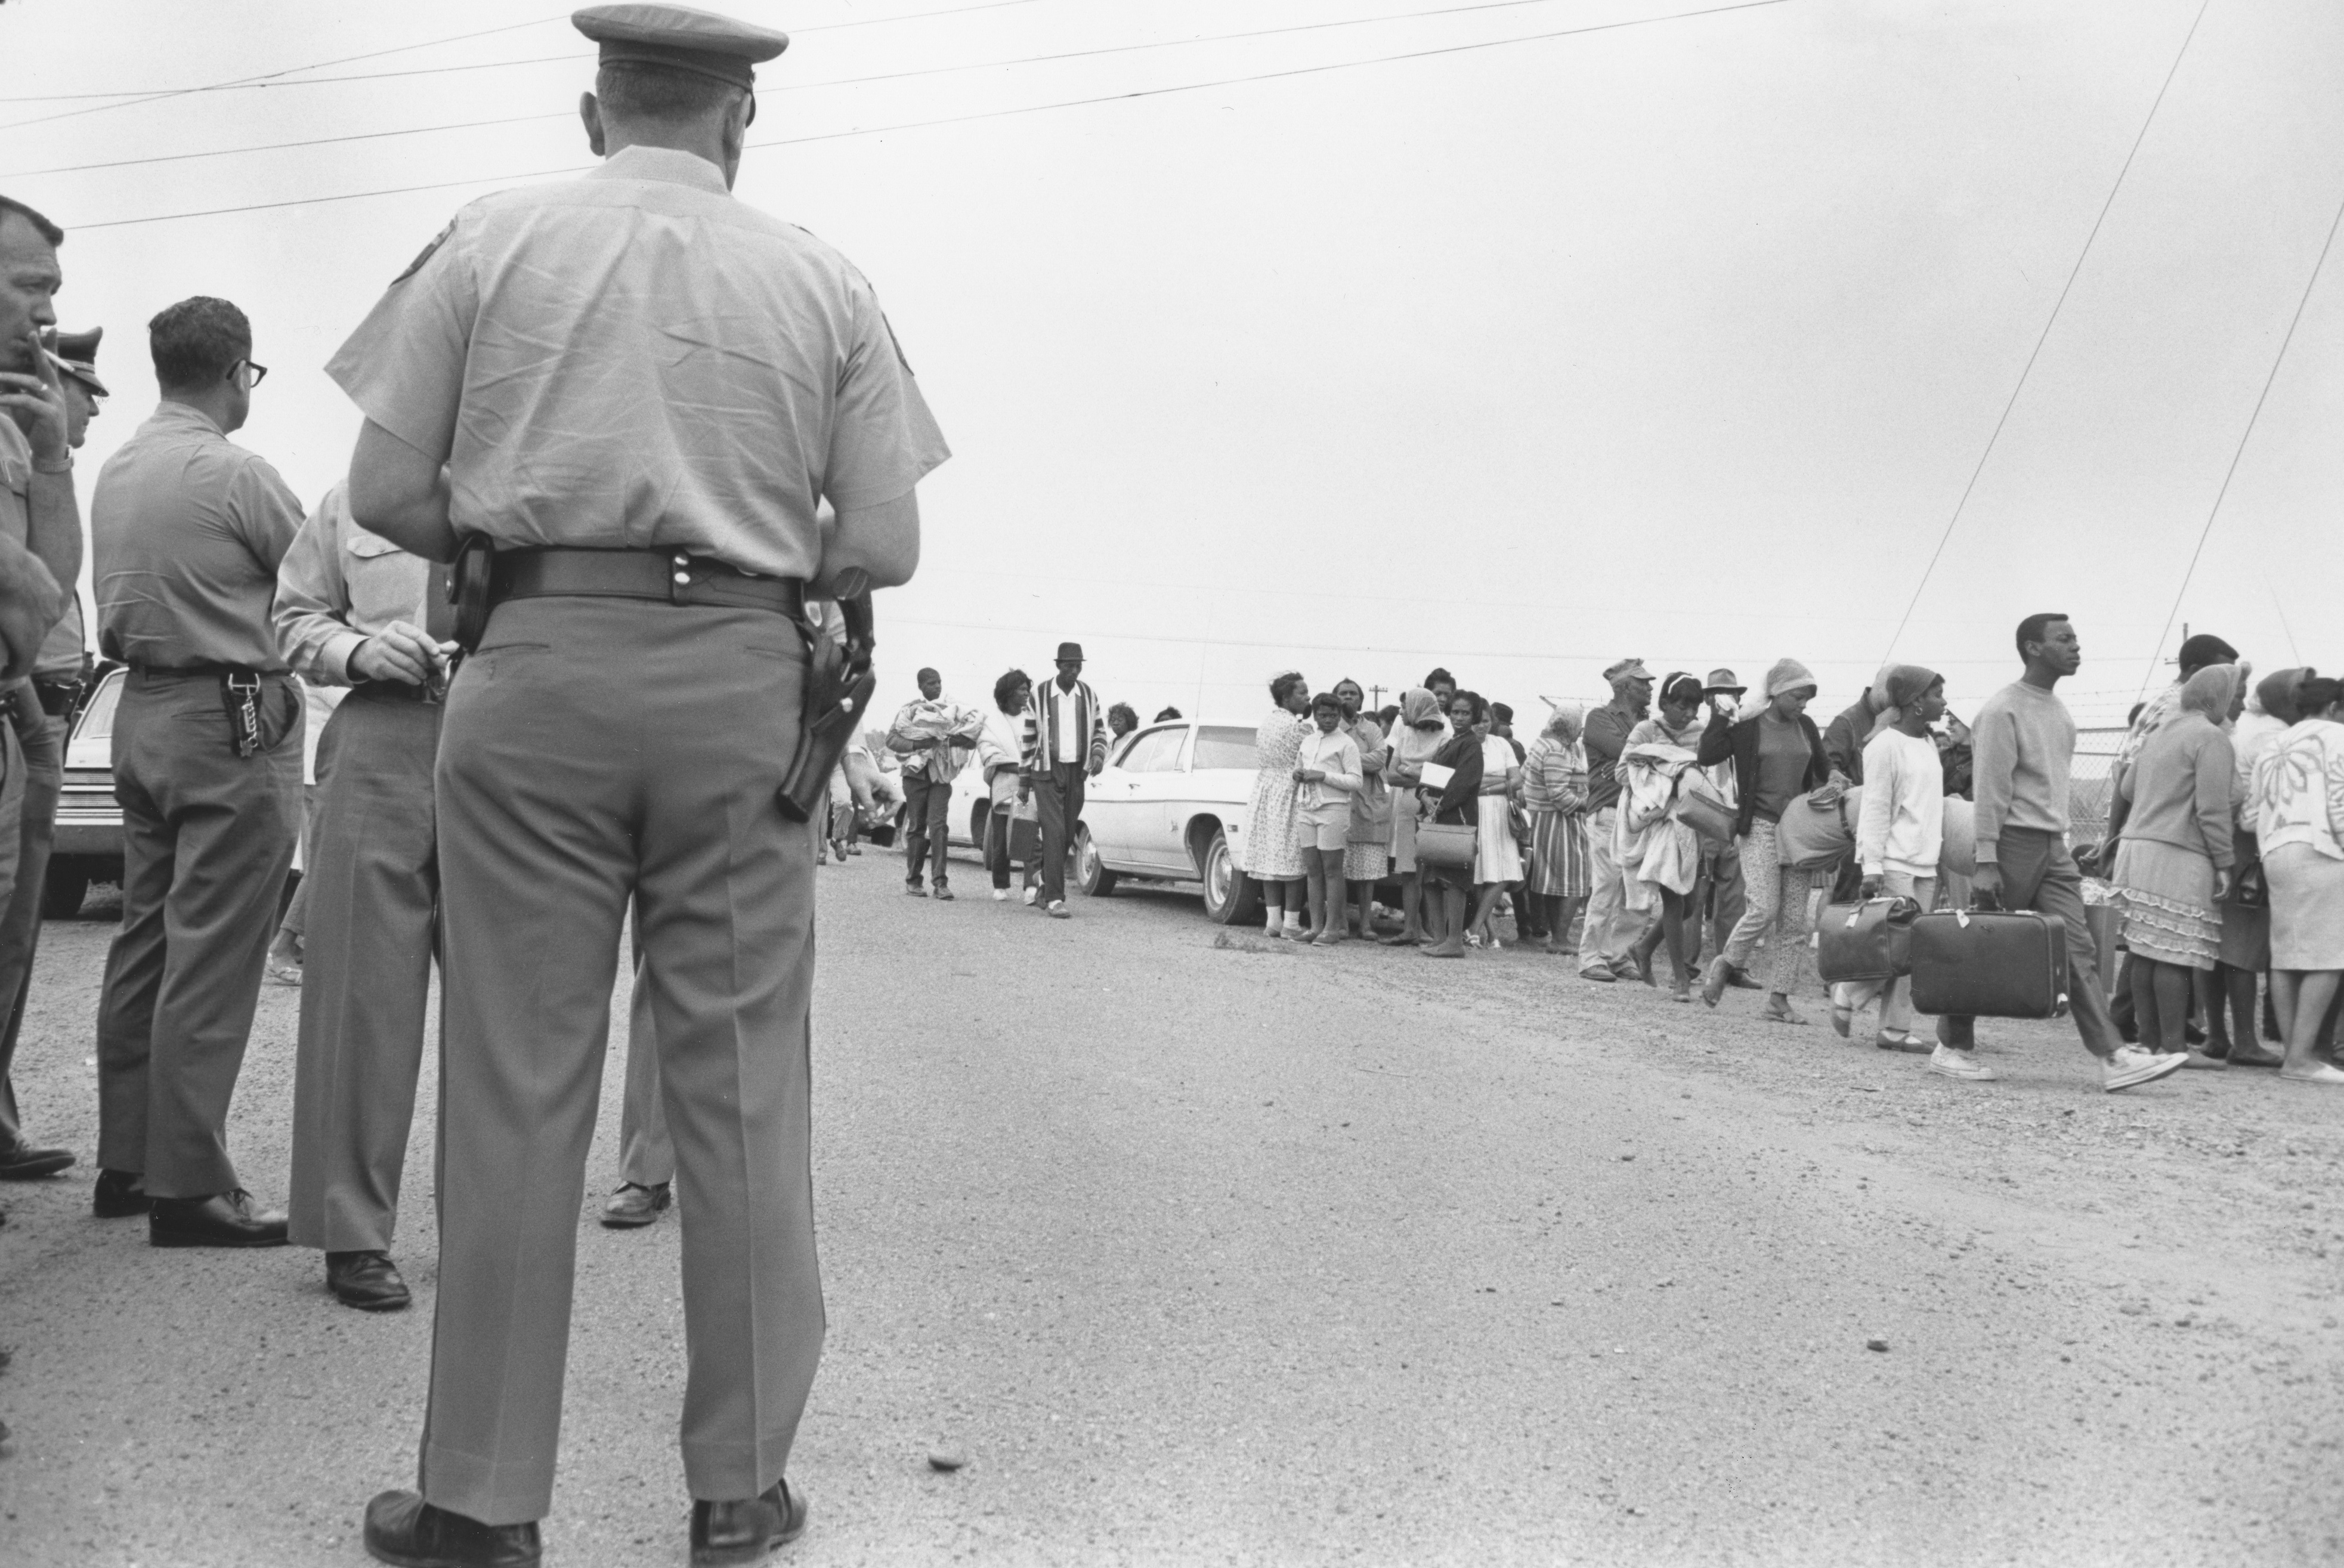 In 1968, Poor Americans Came to D.C. To Protest, Some By Mule